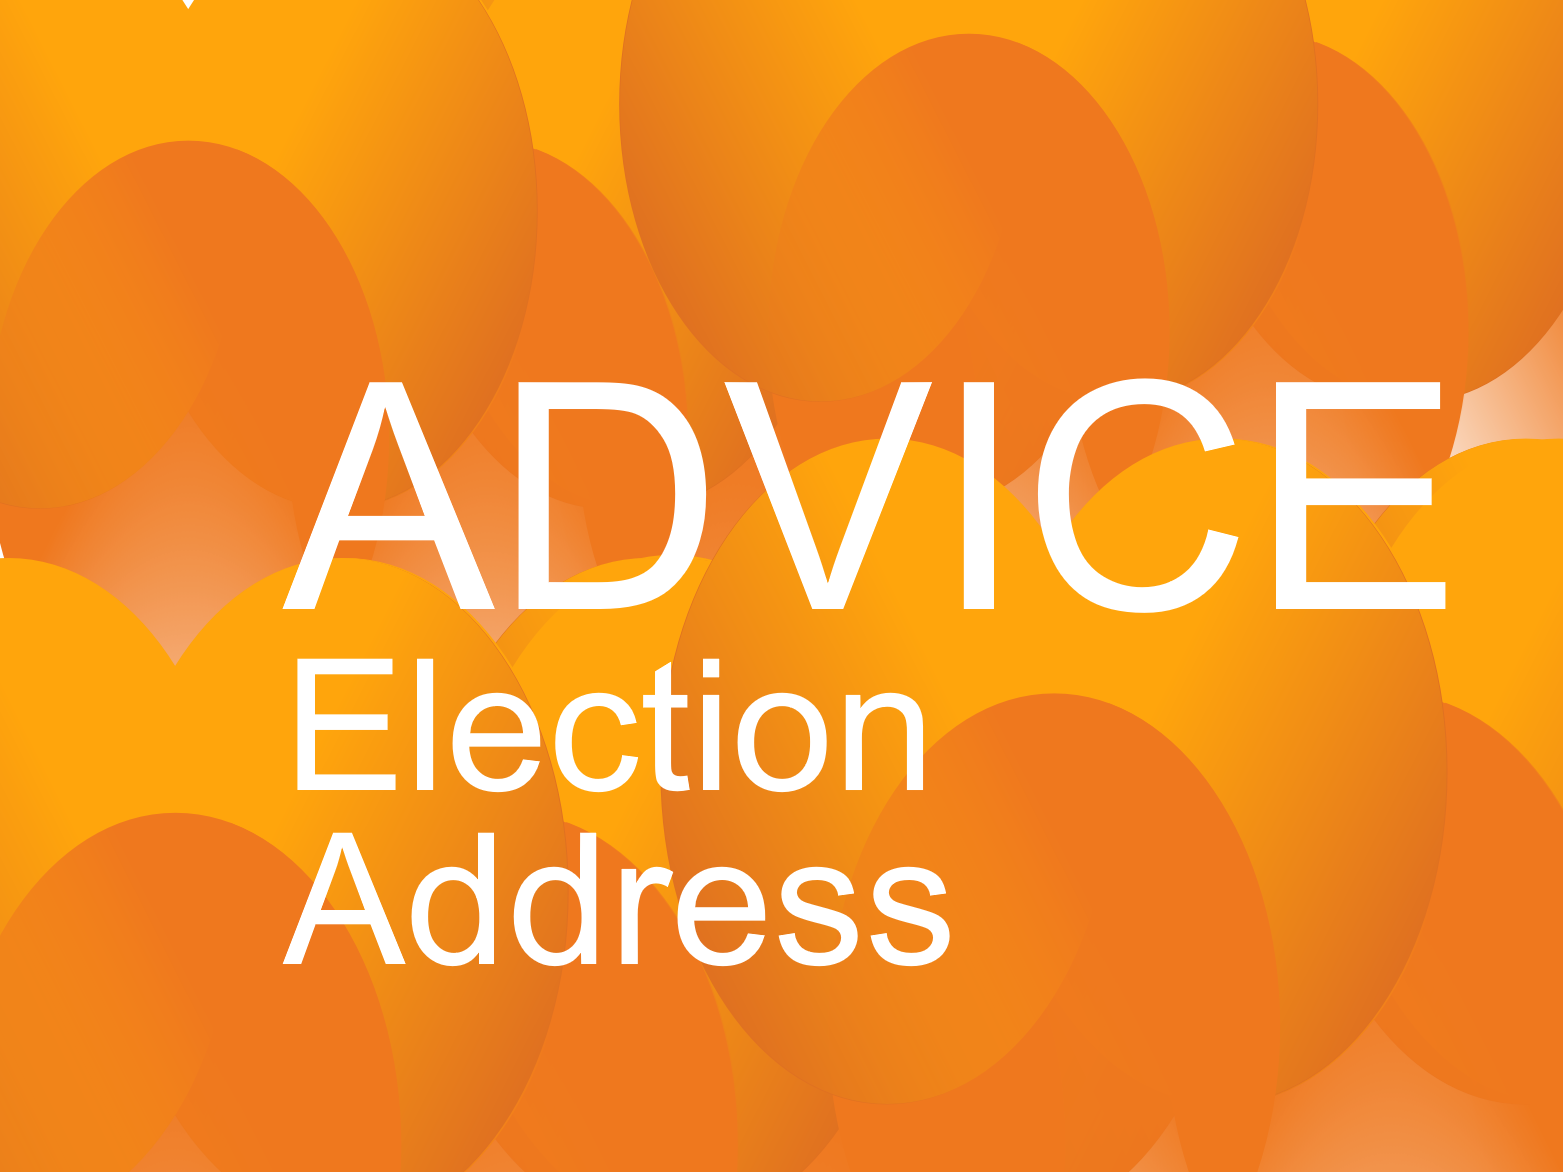 Advice: Election Address and the Royal Mail